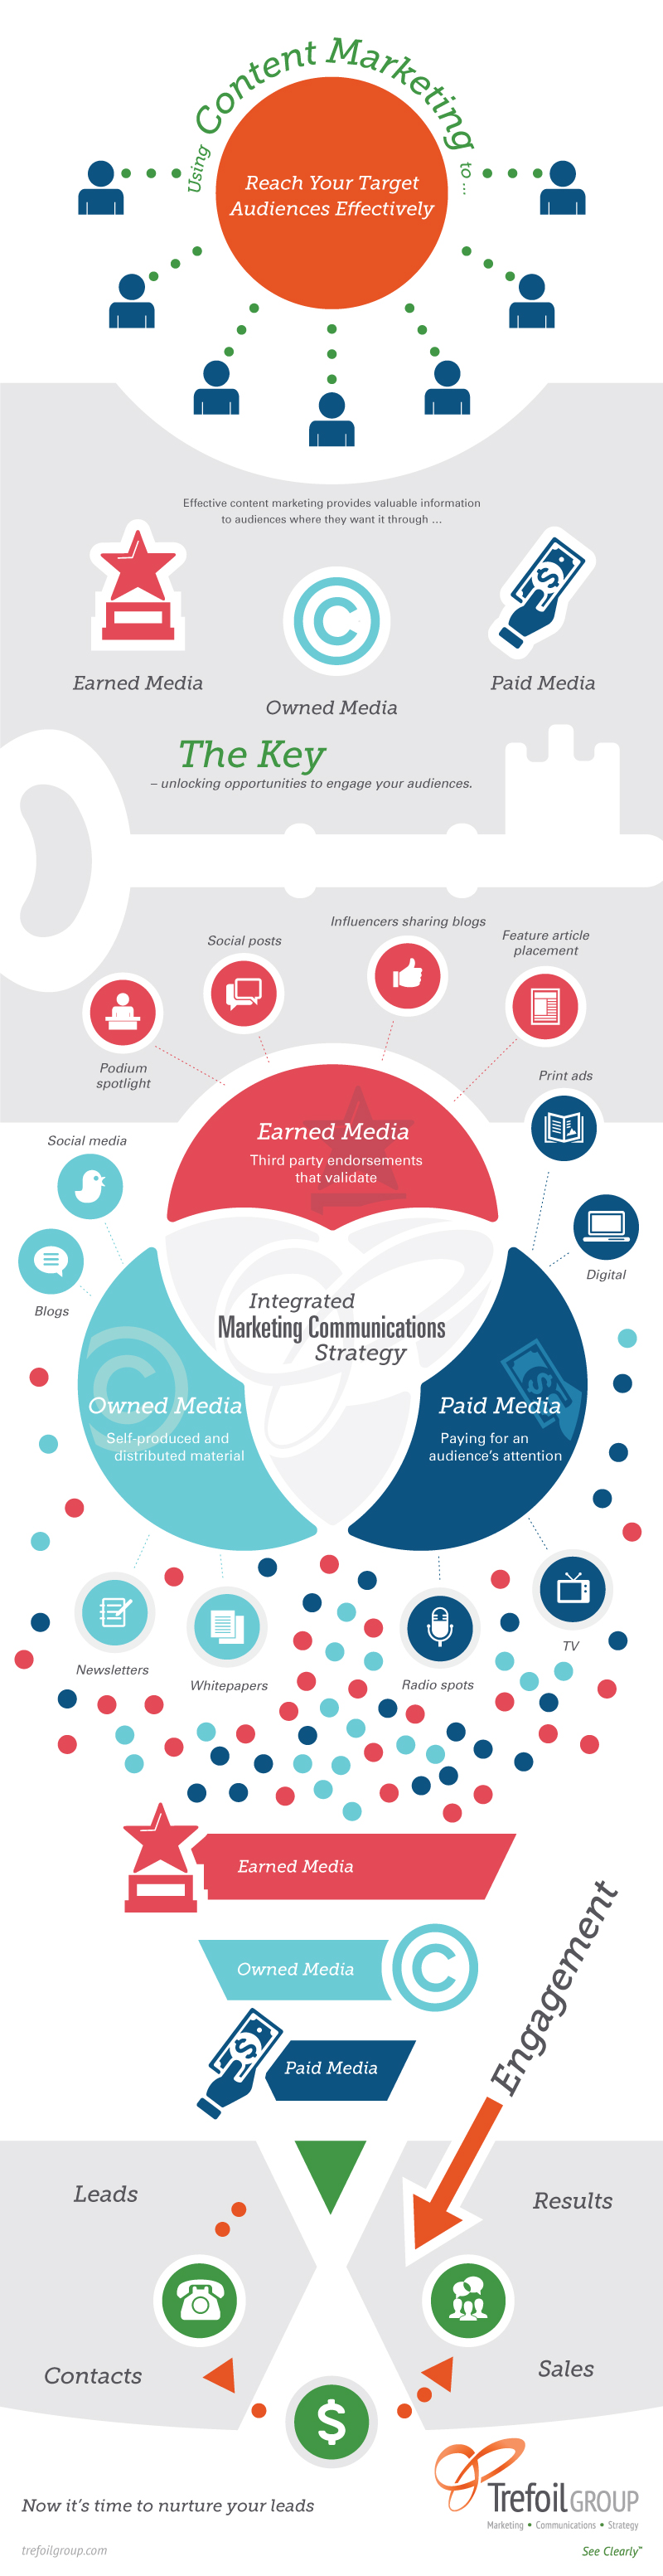 TG-Integrated-Marketing-Infographic-vertical